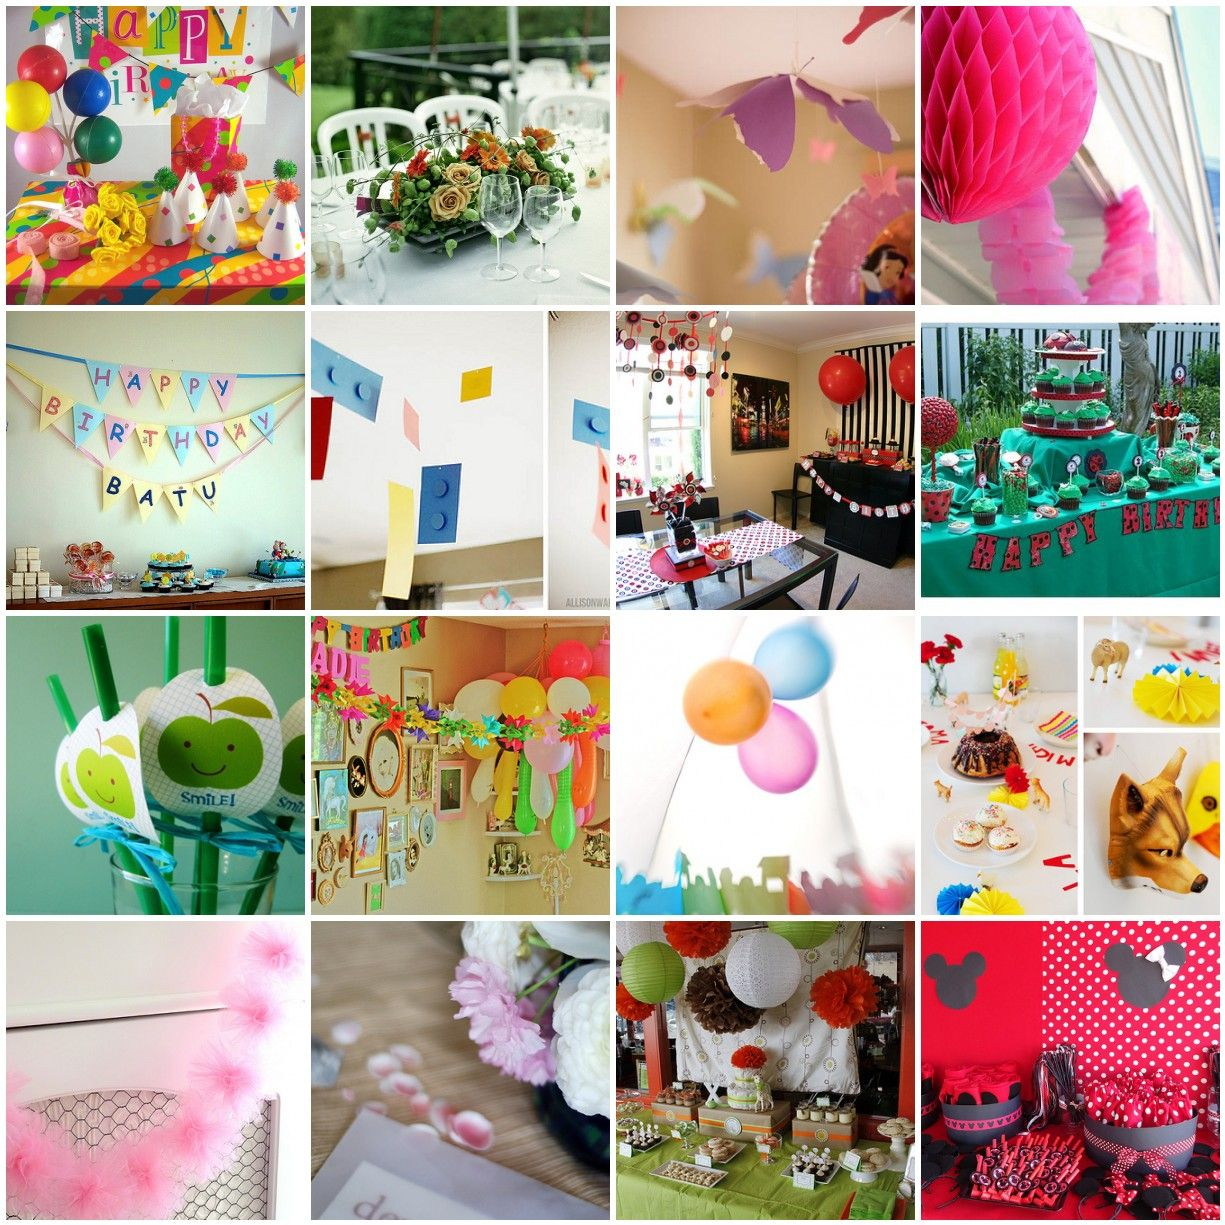 decoration ideas party decorations online ideas for - Party Decorations At Home